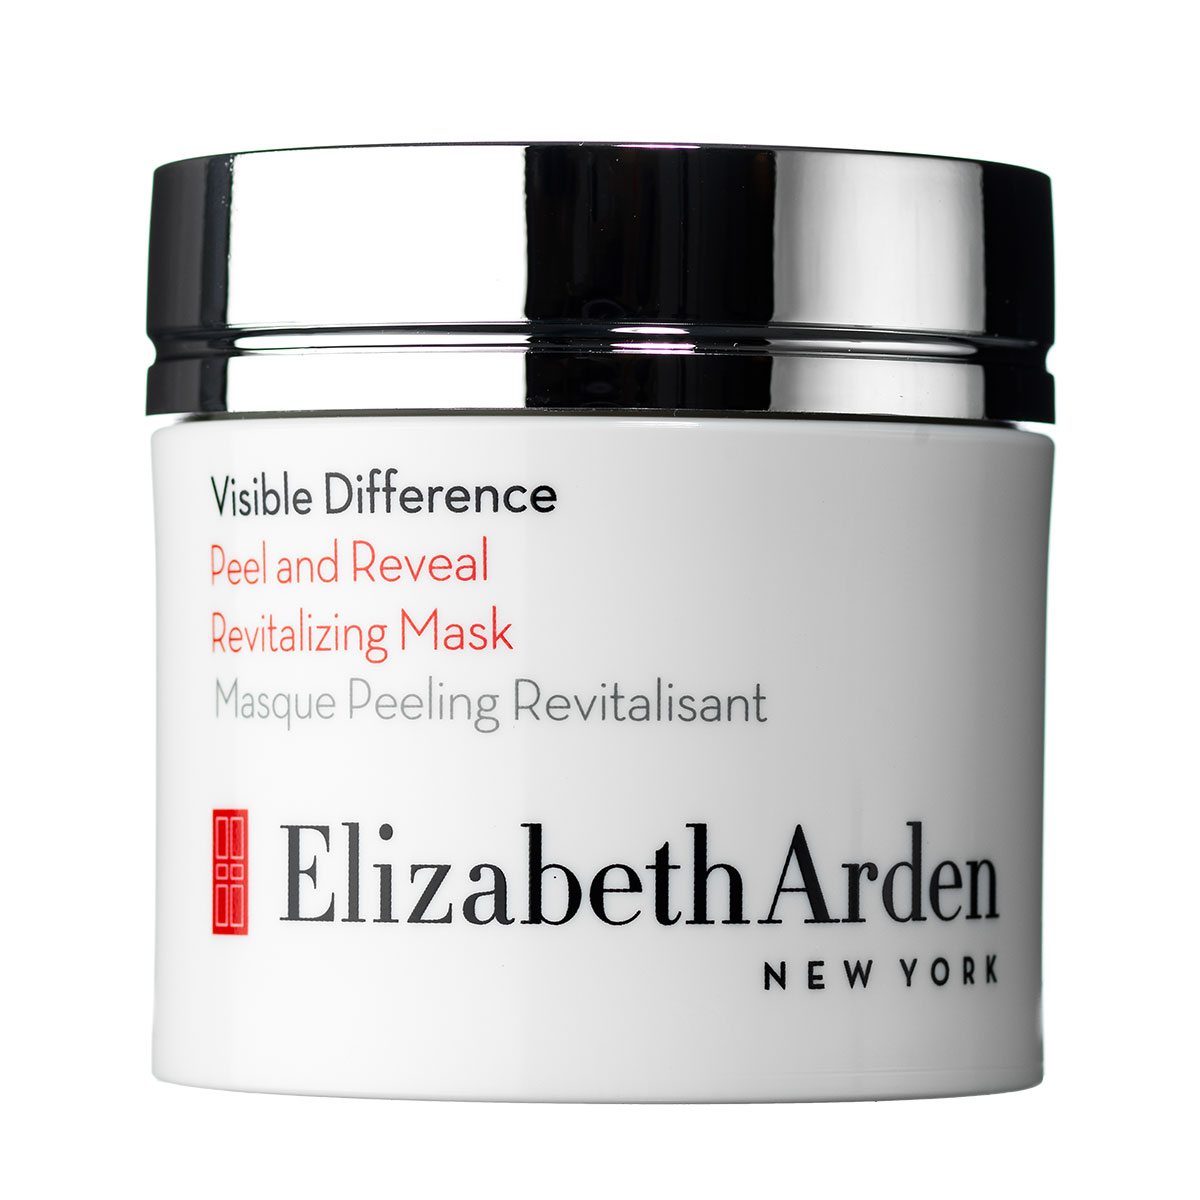 Elizabeth Arden Visible Difference Peel & Reveal Mask - 50 ml Eksfolierende og blødgørende ansigtsmaske til normal hud